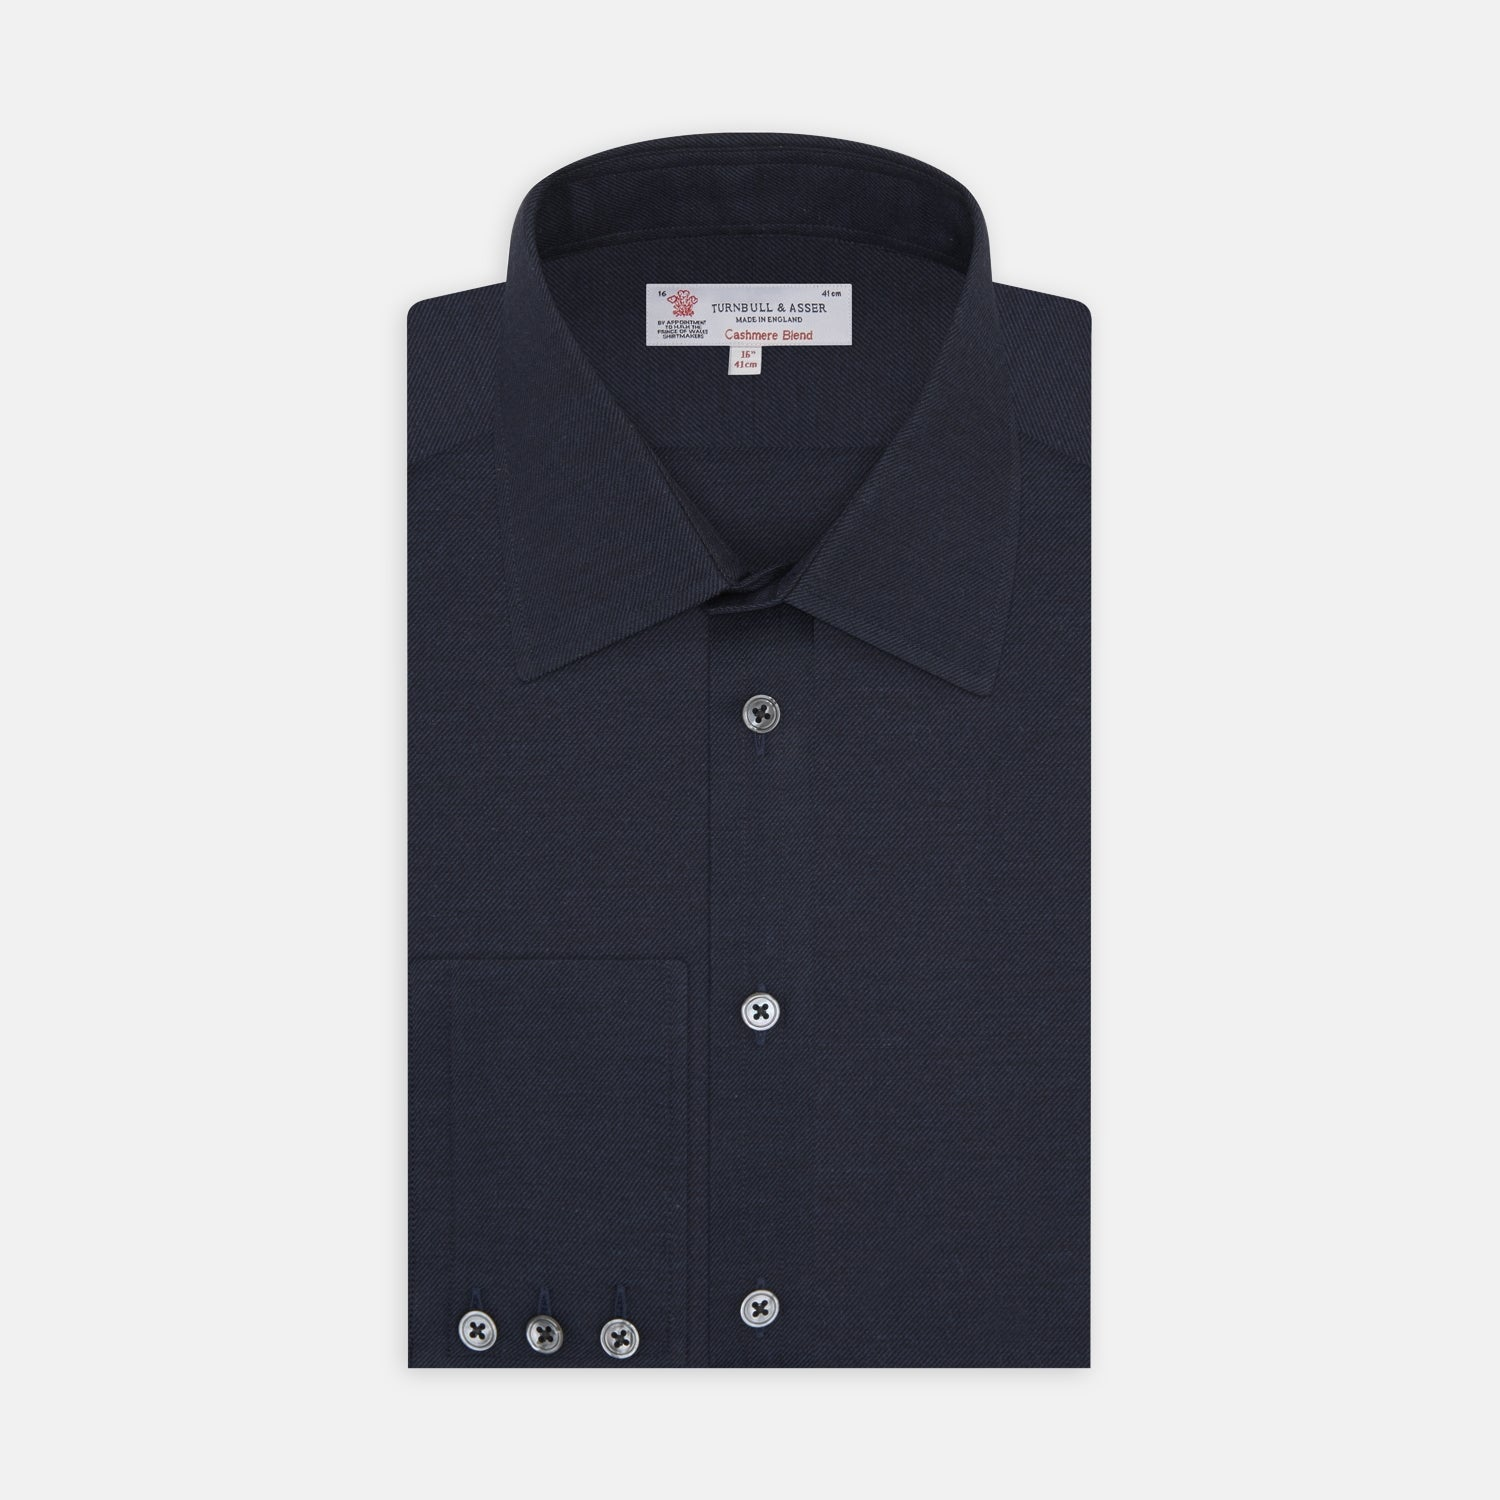 Navy Cashmere Blend Shirt with T&A Collar and 3-Button Cuffs - 14.5 from Turnbull & Asser